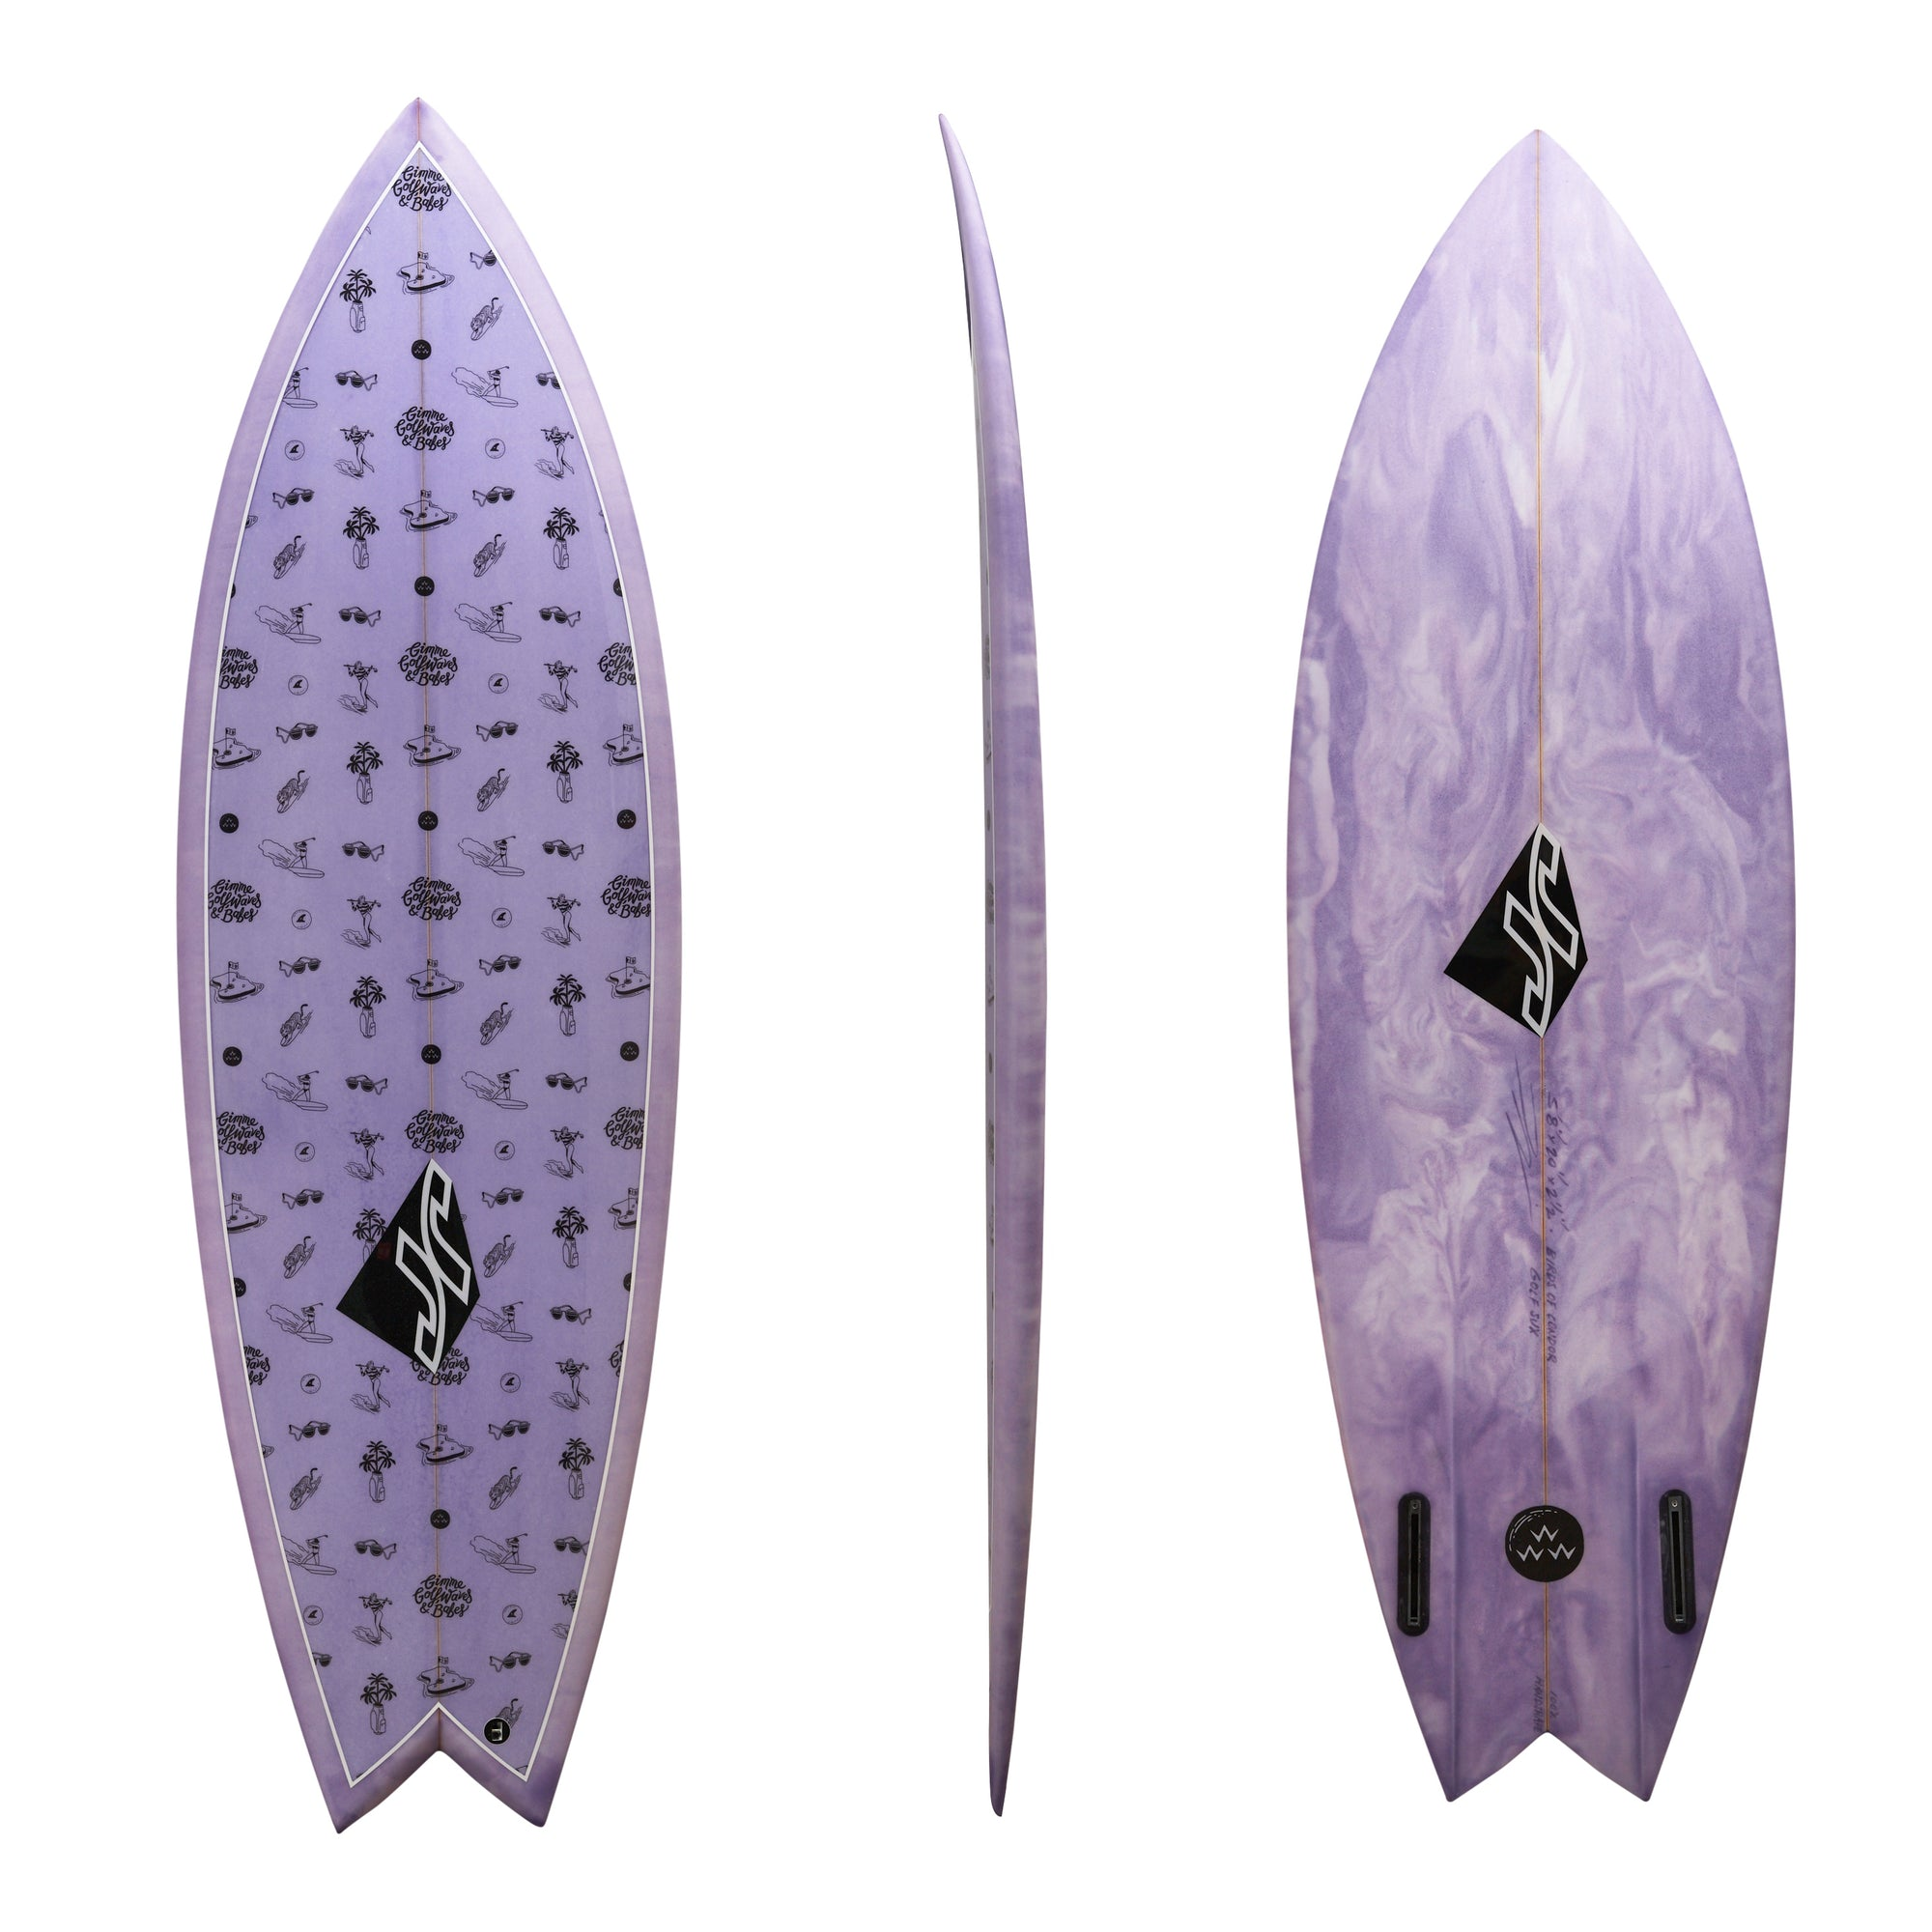 birds-of-condor-surfboard-surfboards-jr-gold-coast-surfing-wsl-surfer